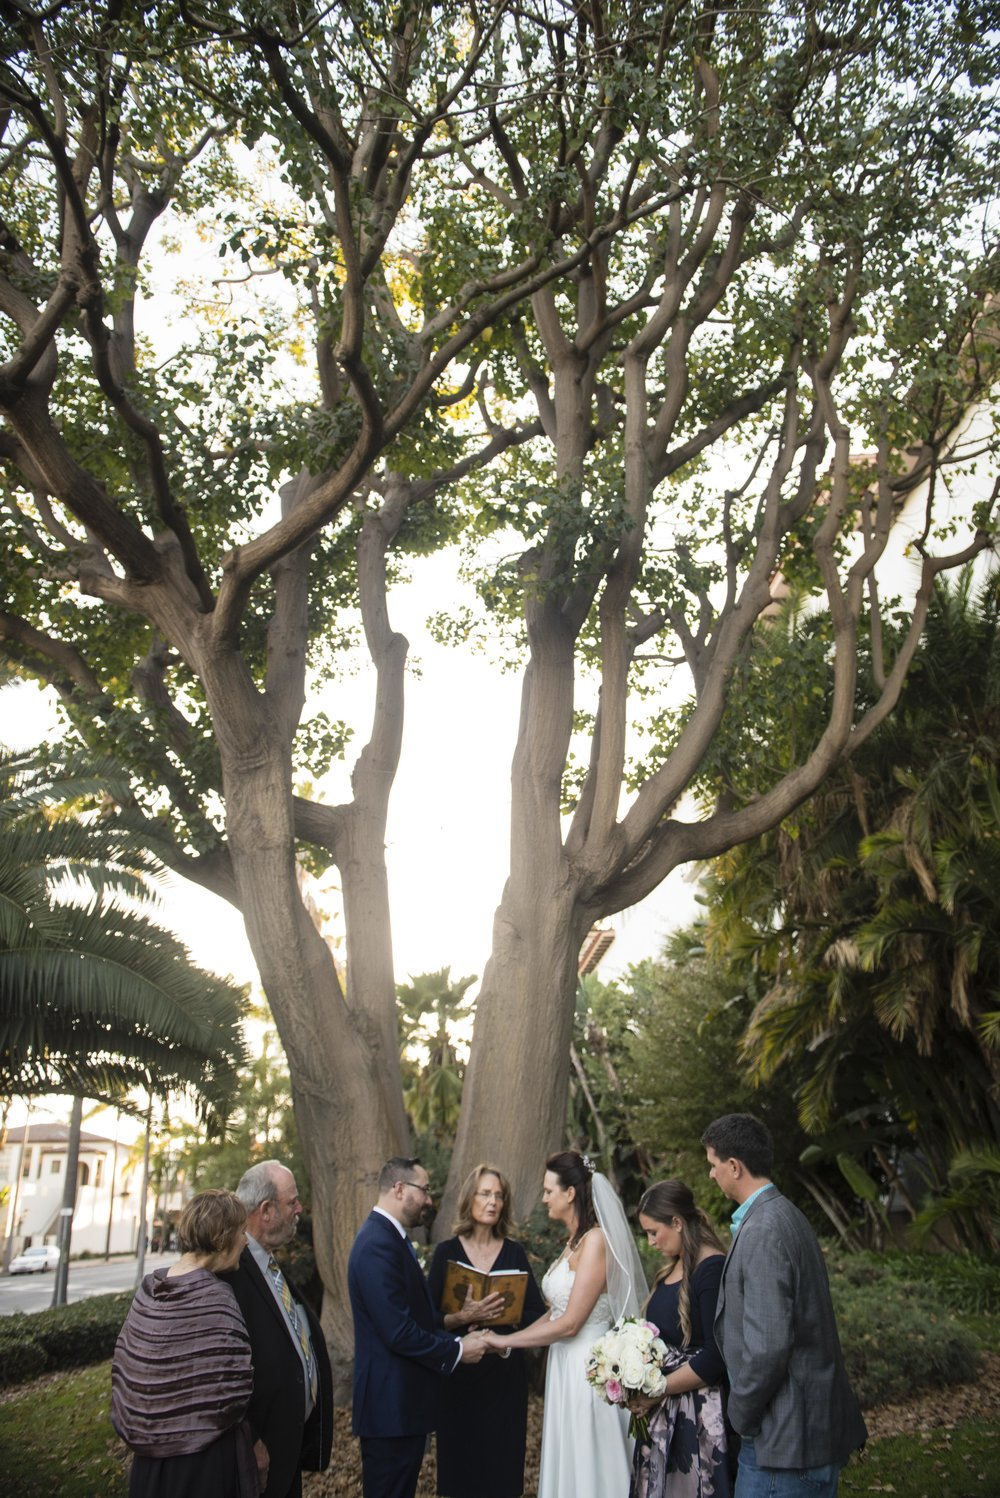 www.santabarbarawedding.com | By Cherry Photography | Santa Barbara Courthouse | Ceremony